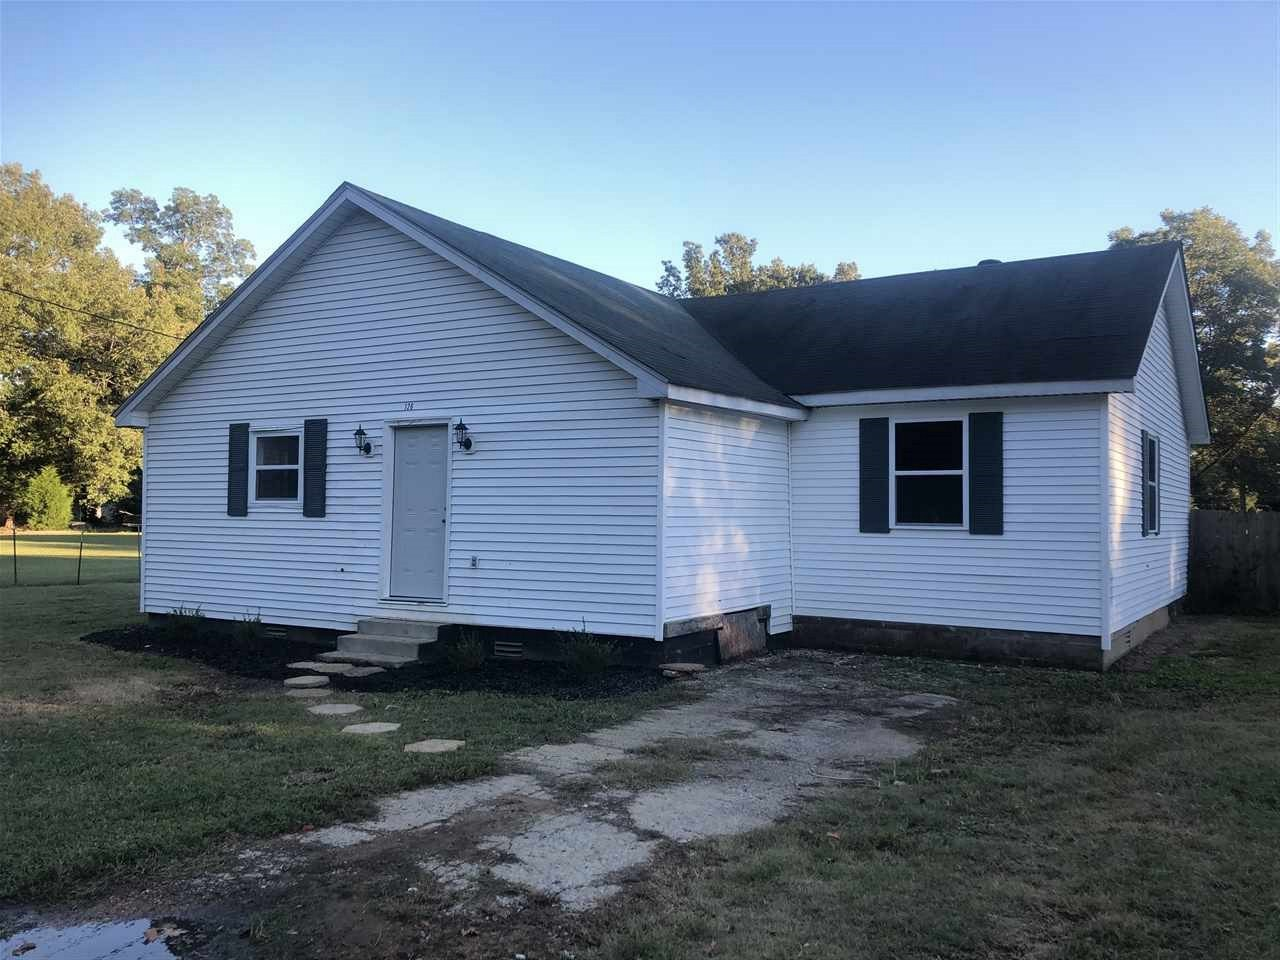 126 Shannon St, Dyersburg, Tennessee 38024, 3 Bedrooms Bedrooms, ,2 BathroomsBathrooms,Residential,For Sale,126 Shannon St,205160